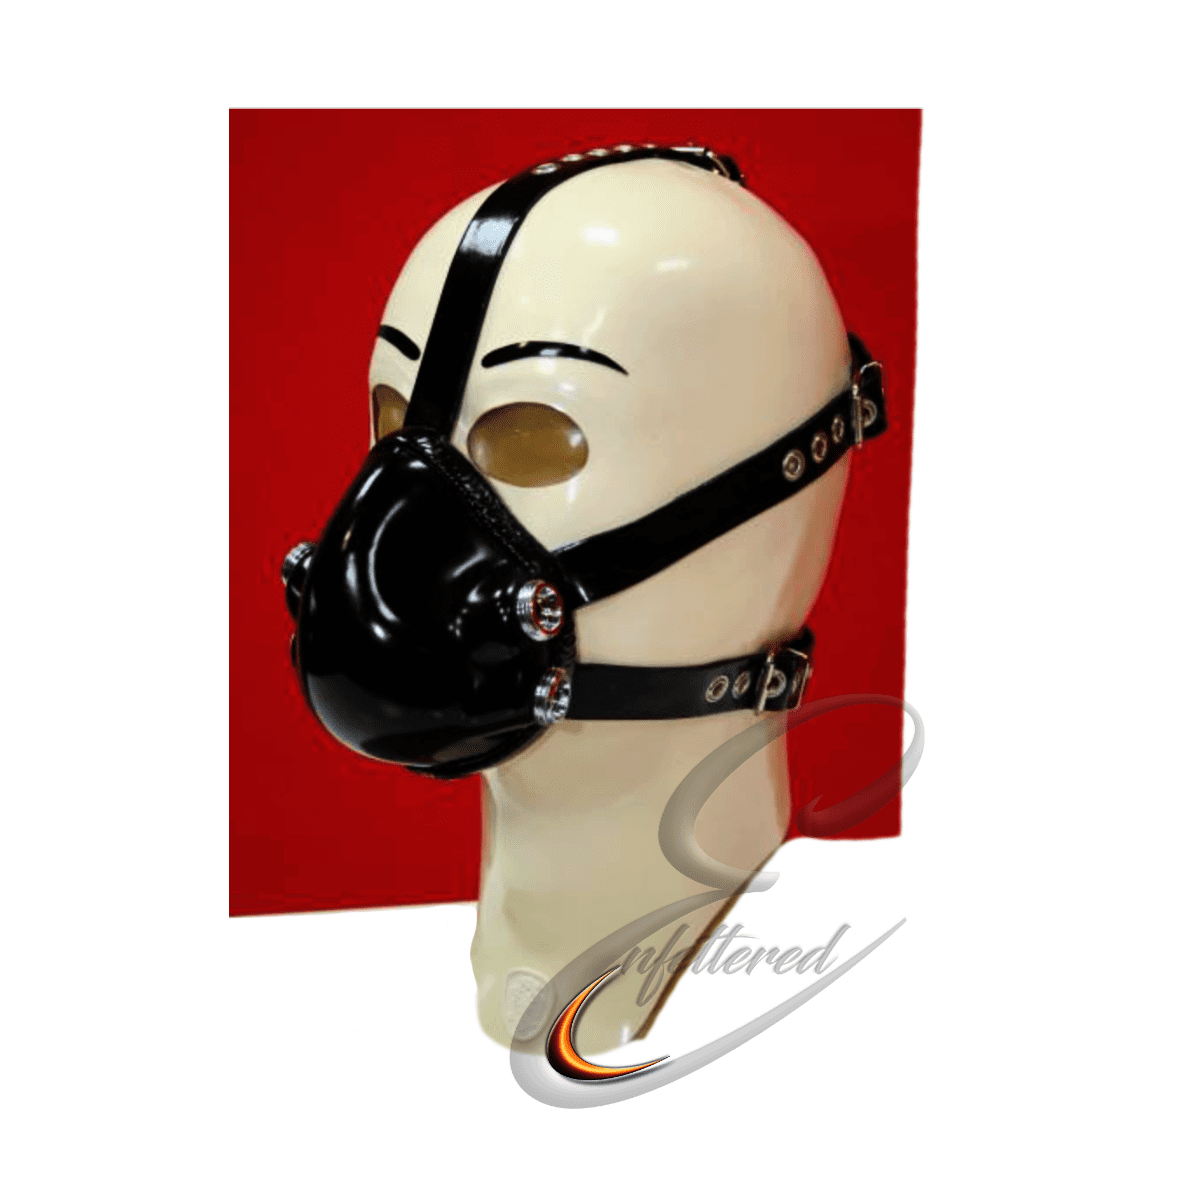 Enfettered BreathPlay Harness